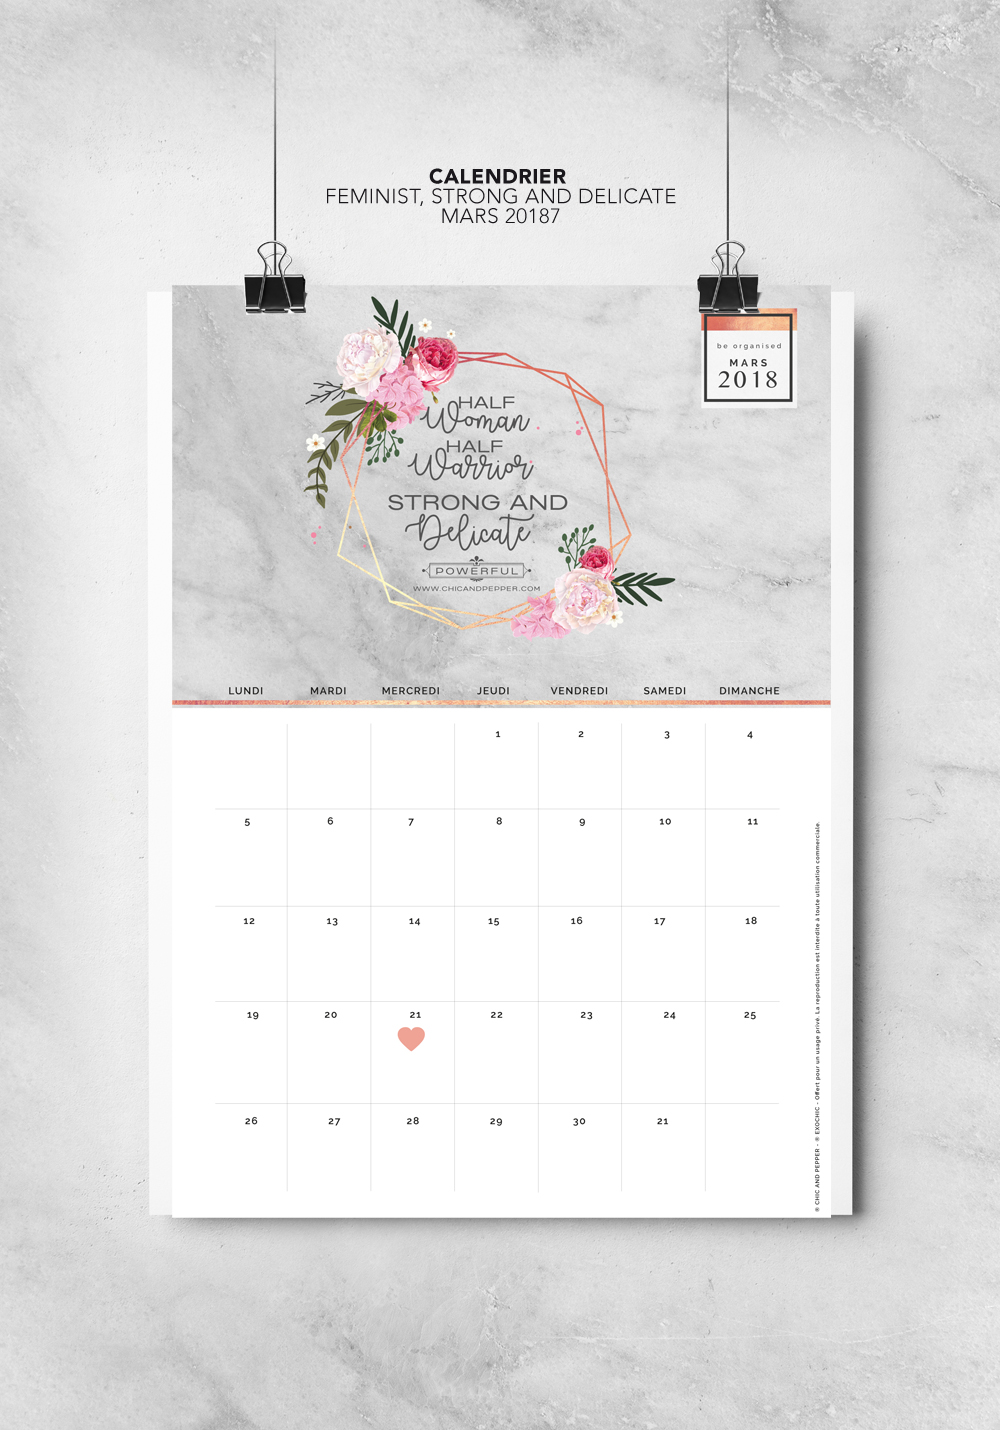 Fond Décran Calendrier 2021 Calendrier fond écran CHIC AND PEPPER Mars 2018   Chic and Pepper